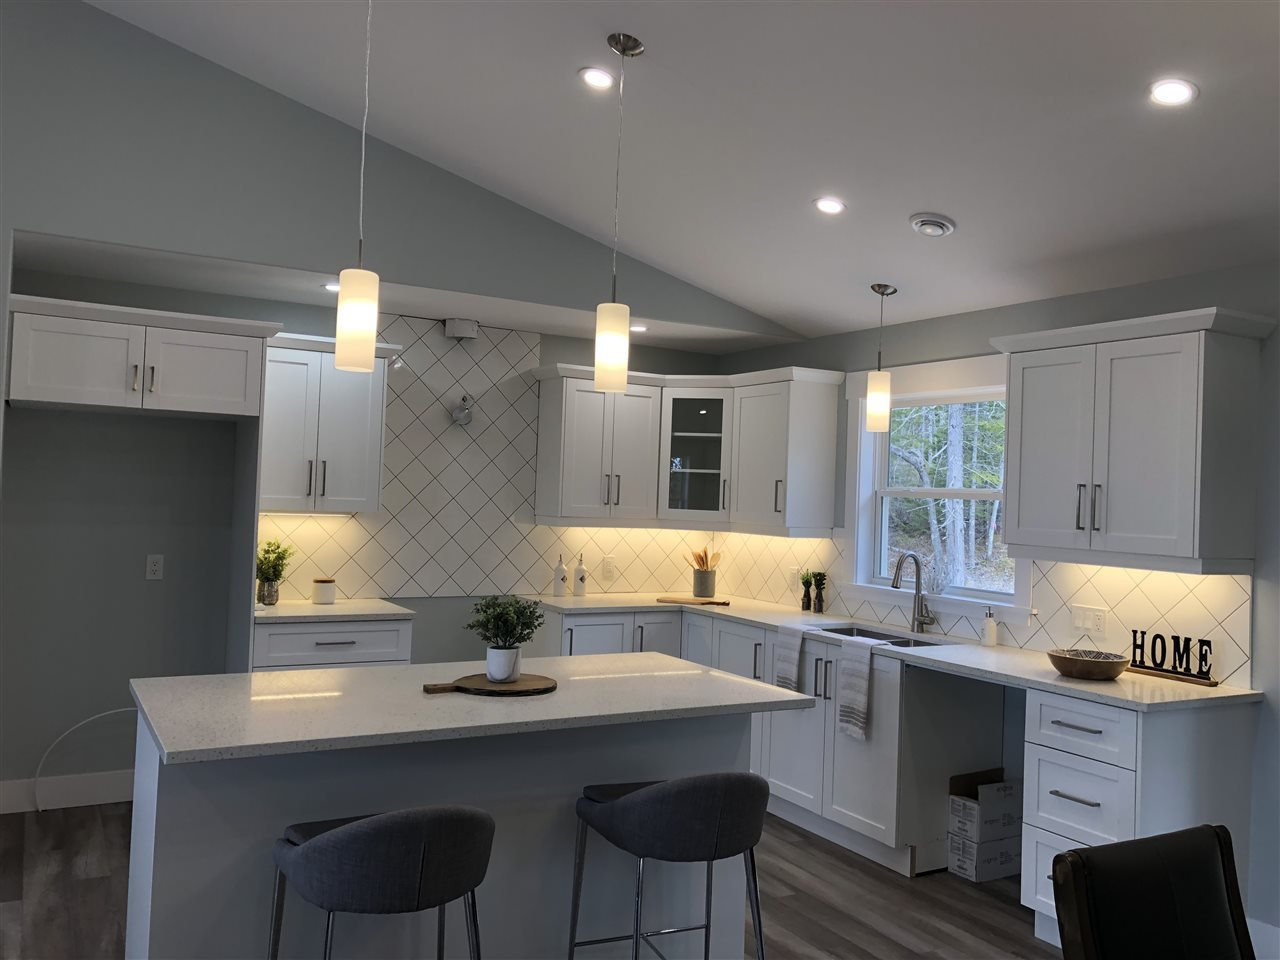 Photo 8: Photos: Lot 678 - 215 Confederation Avenue in Fall River: 30-Waverley, Fall River, Oakfield Residential for sale (Halifax-Dartmouth)  : MLS®# 201913206